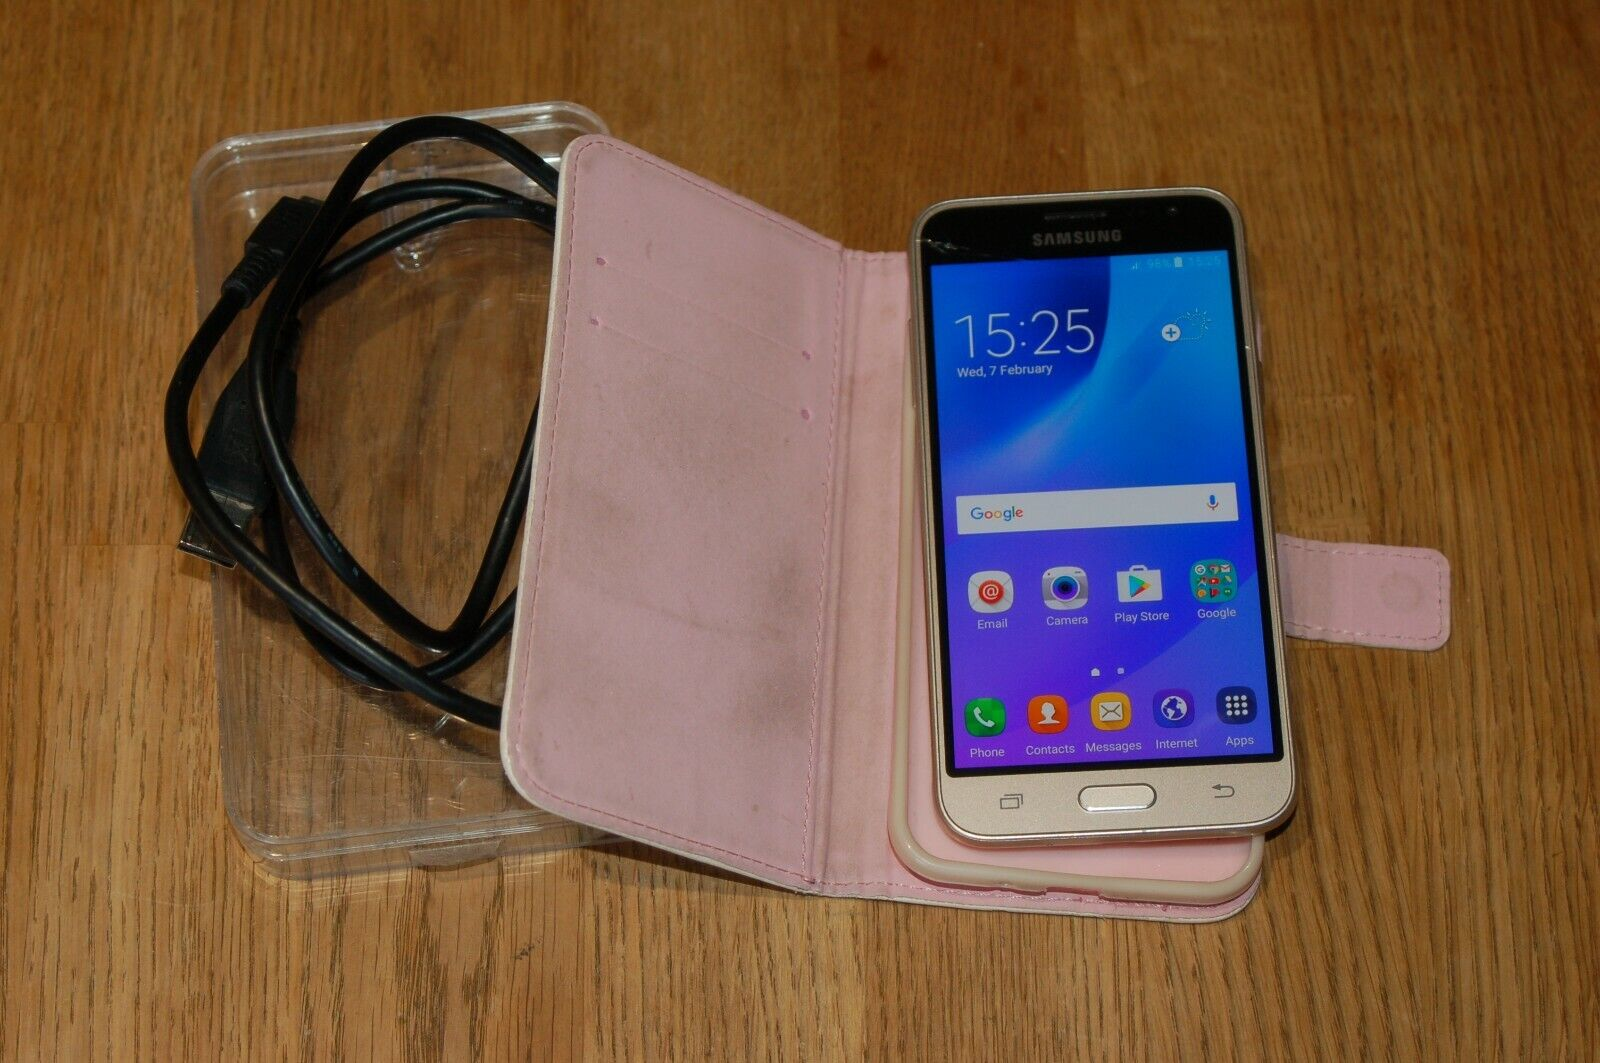 Android Phone - Samsung Galaxy J3 (6) Mobile Phone Smartphone